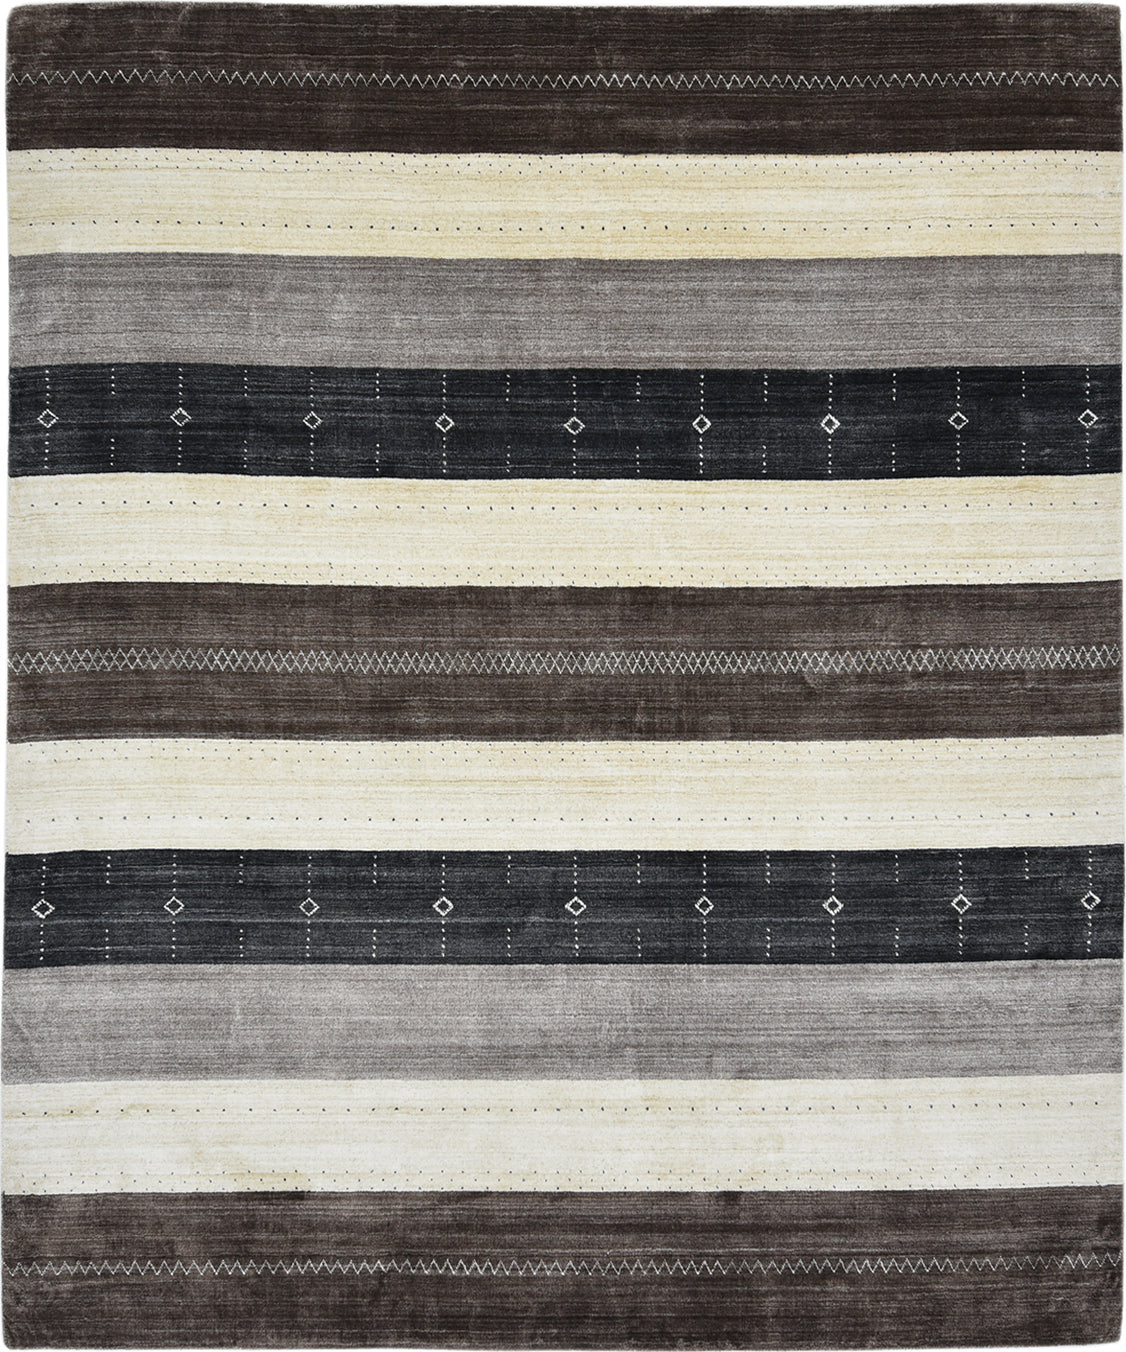 Solo Rugs Gabbeh M8061-111 Brown Area Rug main image